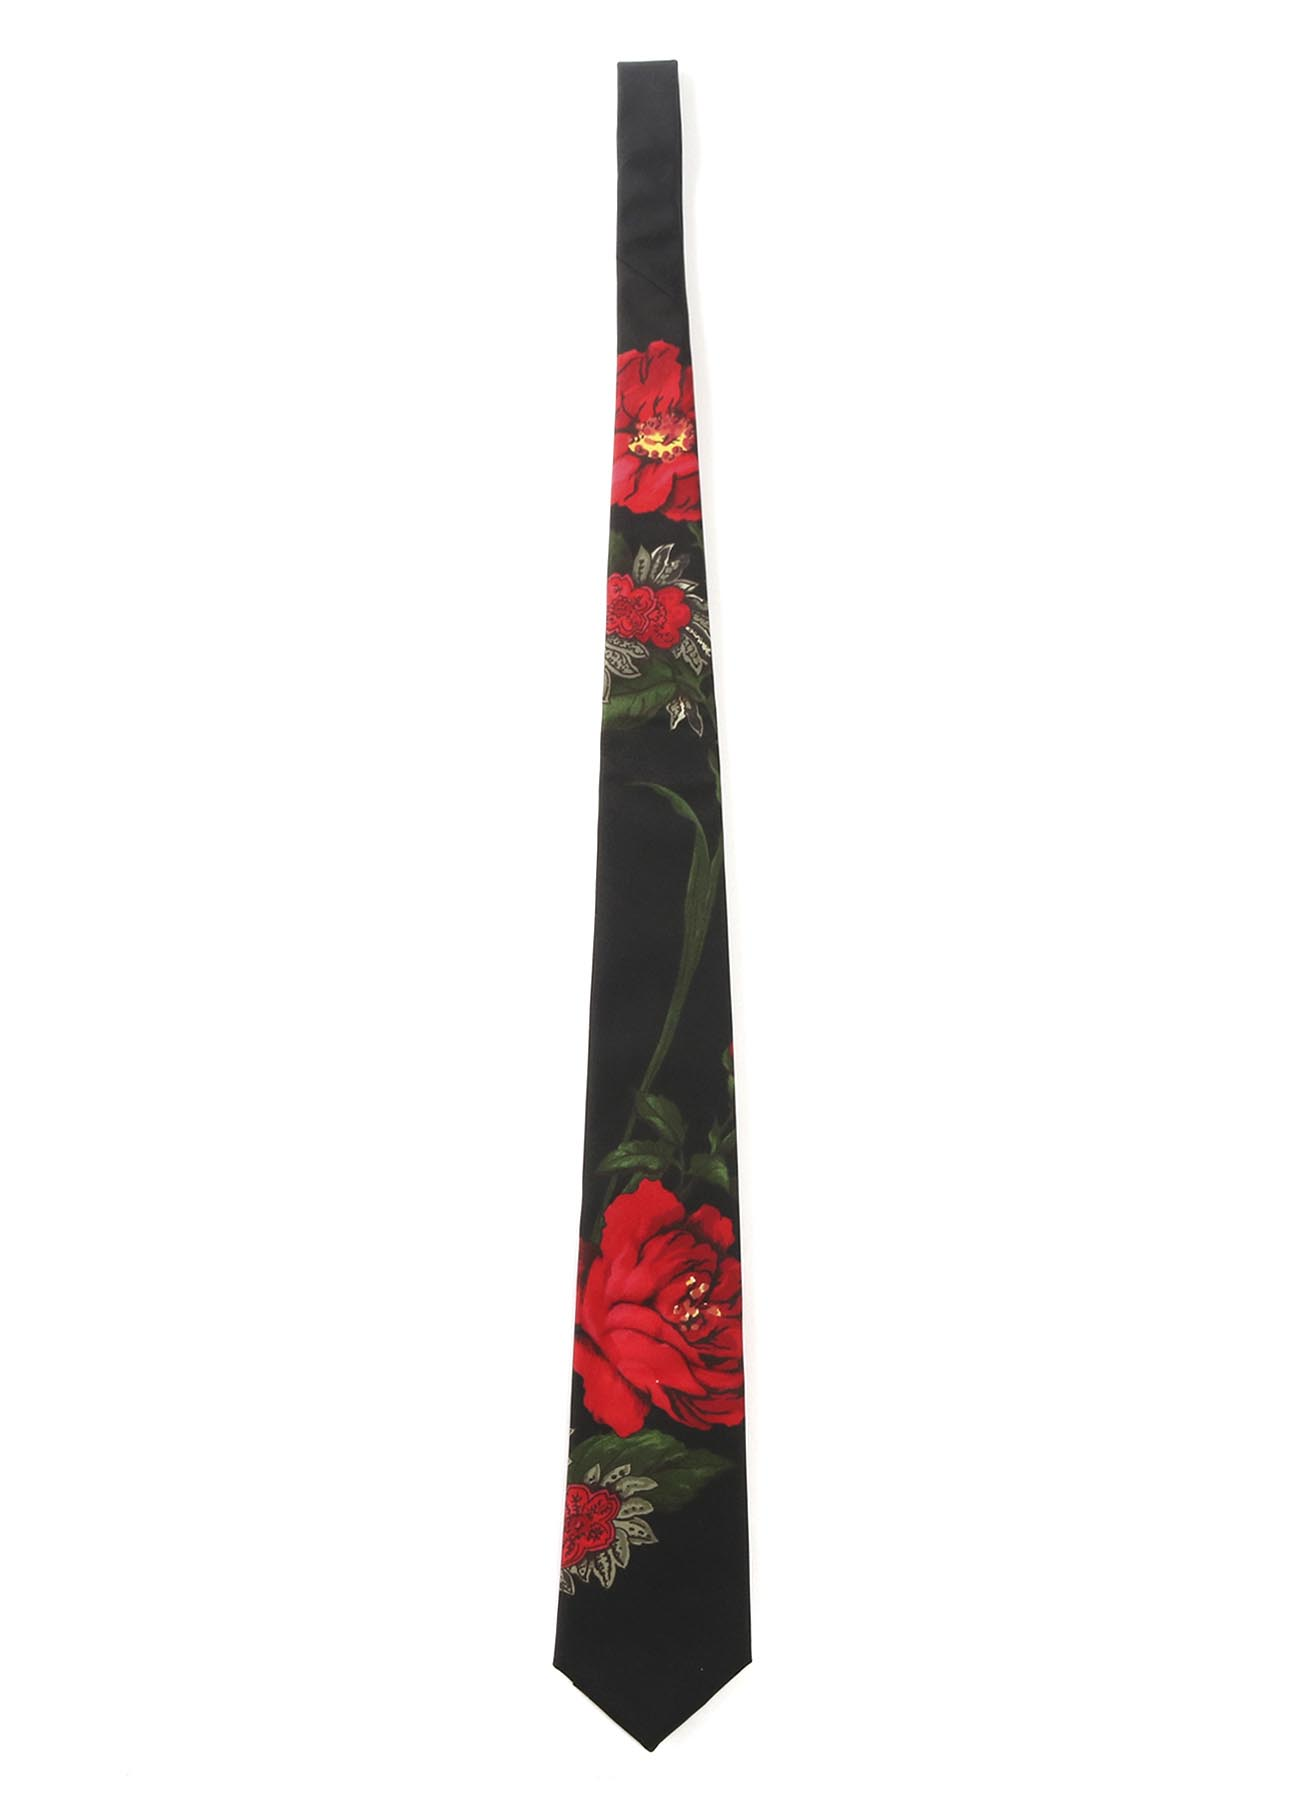 15MONME S/TWILL PT B FLOWER PRINT TIE RED